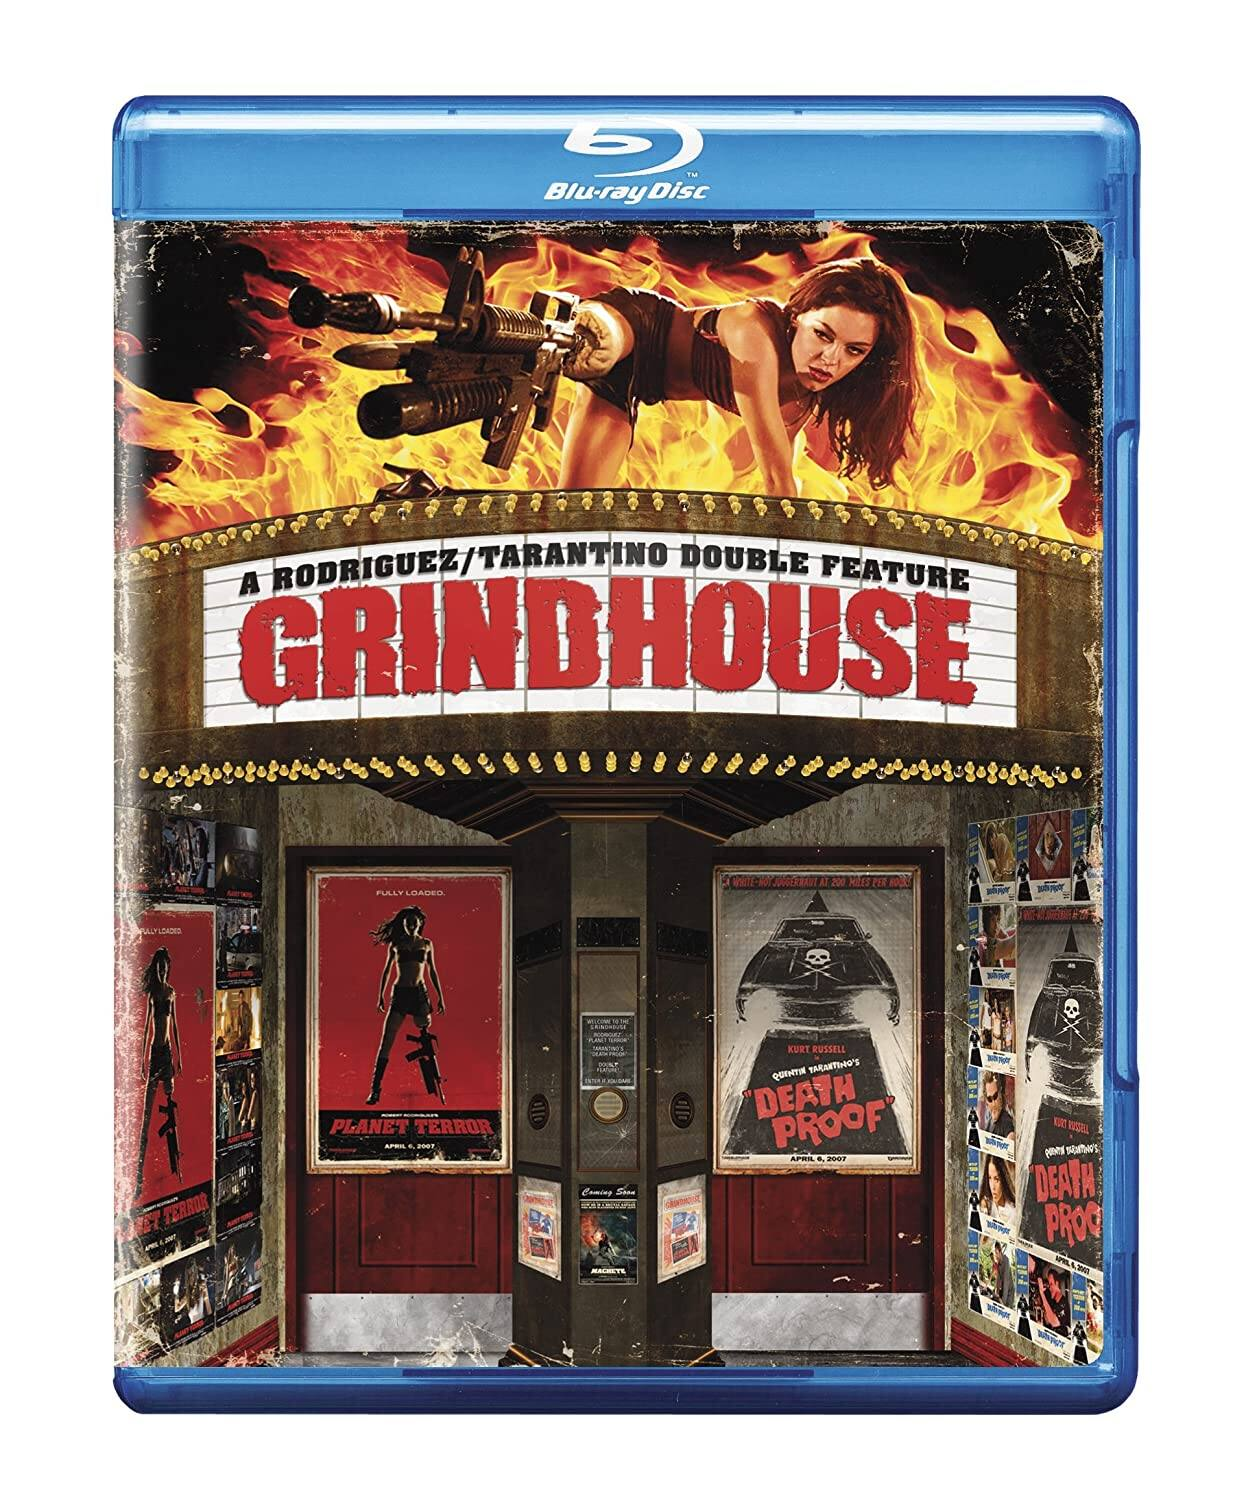 Grindhouse 2 Movie Collection (blu-ray) $7.99; Saw 8 Movie collection $12.49 (blu-ray) & more at amazon, best buy